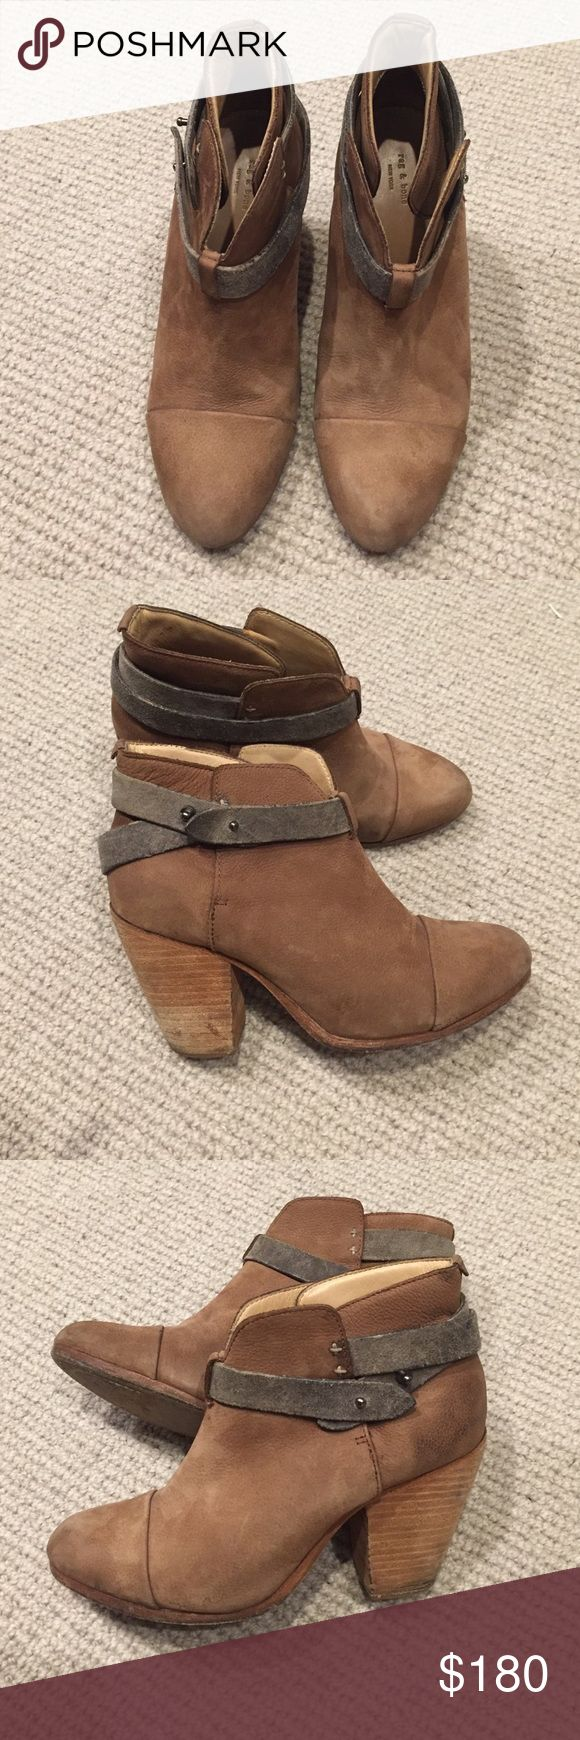 Rag & Bone Harrow tan leather boots sz 8 Europe 38 Soft Tan leather rag & bone Harrow booties with grey leather straps. Super comfy boots. Minimal wear and a few scuffs on the heel. rag & bone Shoes Ankle Boots & Booties